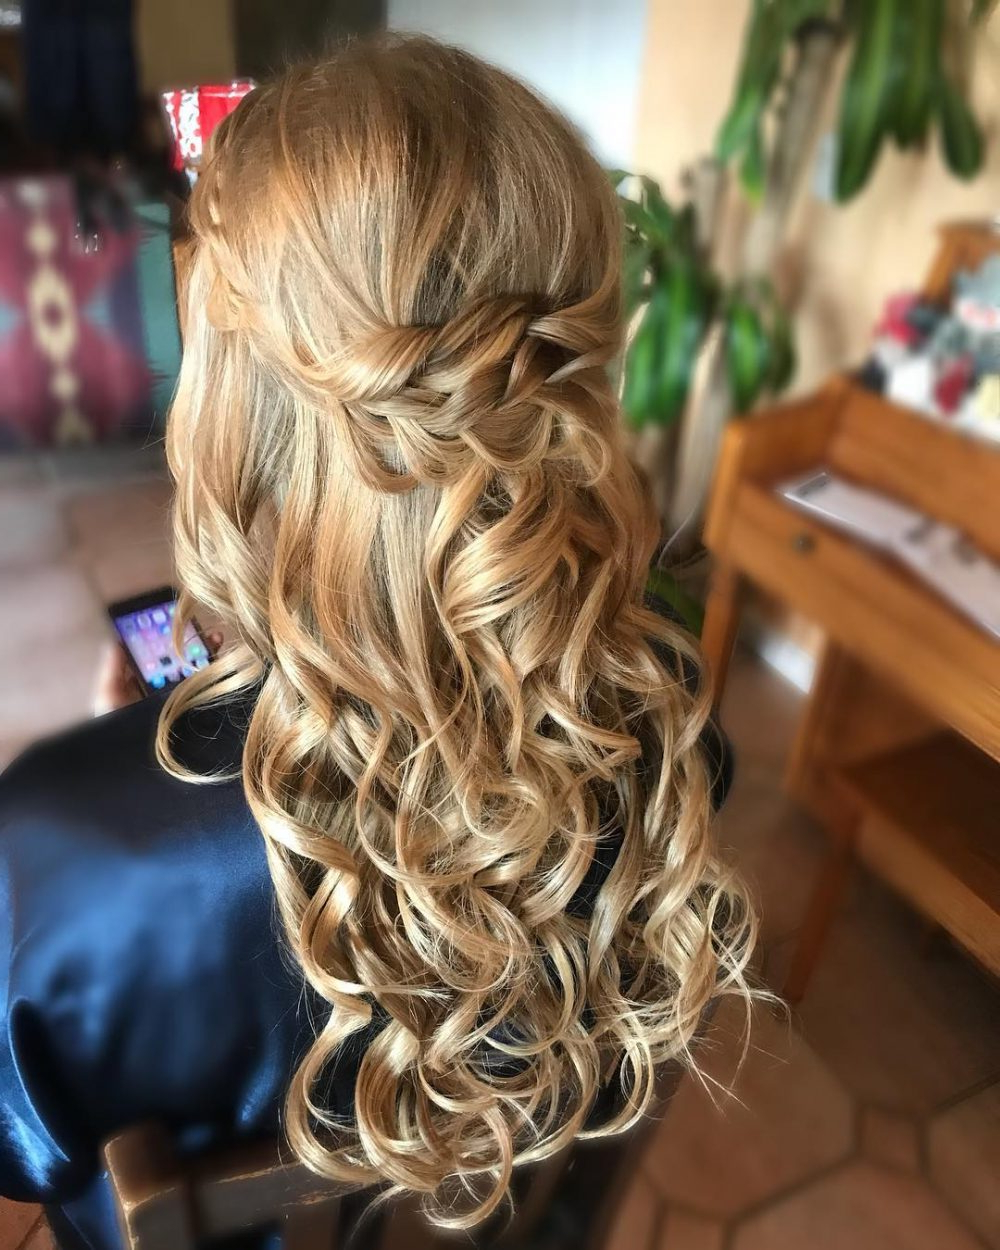 24 Gorgeous Wedding Hairstyles For Long Hair In 2019 Pertaining To Best And Newest Voluminous Half Ponytail Bridal Hairstyles (View 2 of 20)